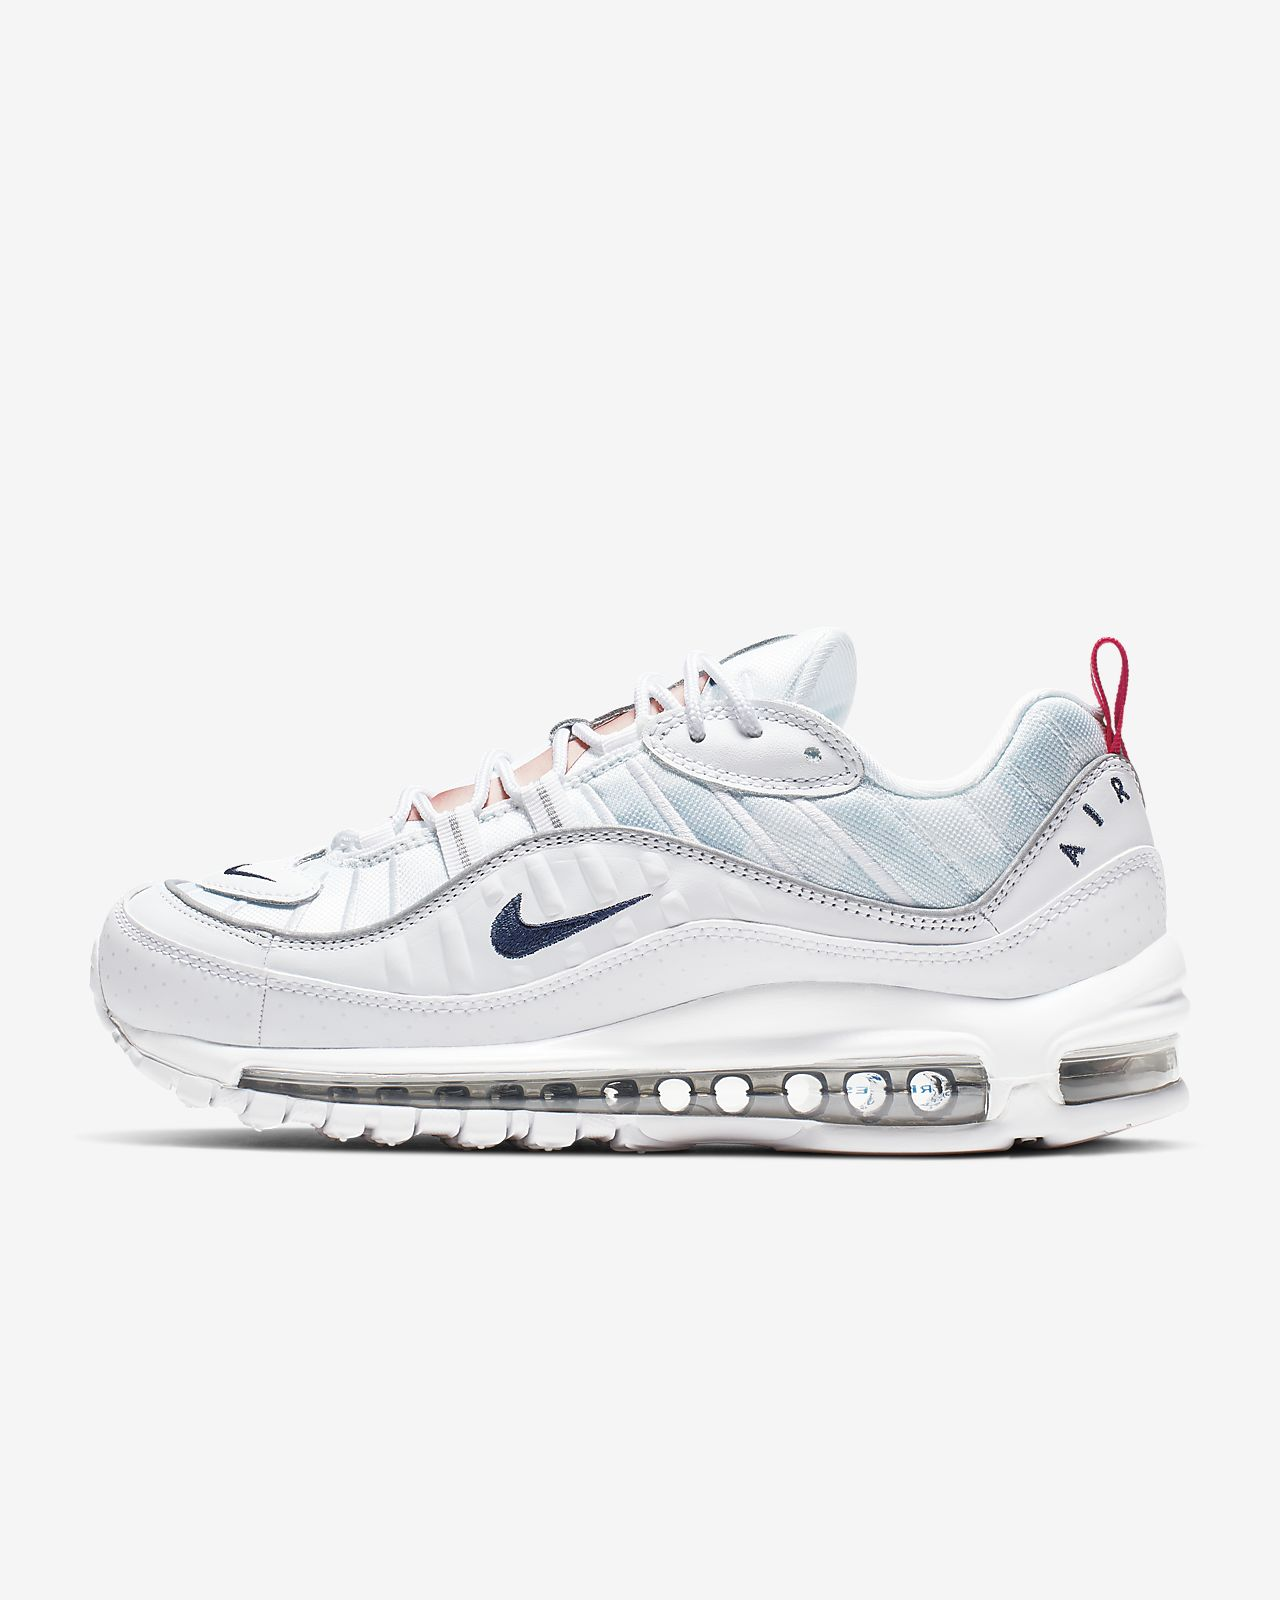 low priced 6a40a ed1f3 Nike Air Max 98 Premium Unité Totale Women's Shoe